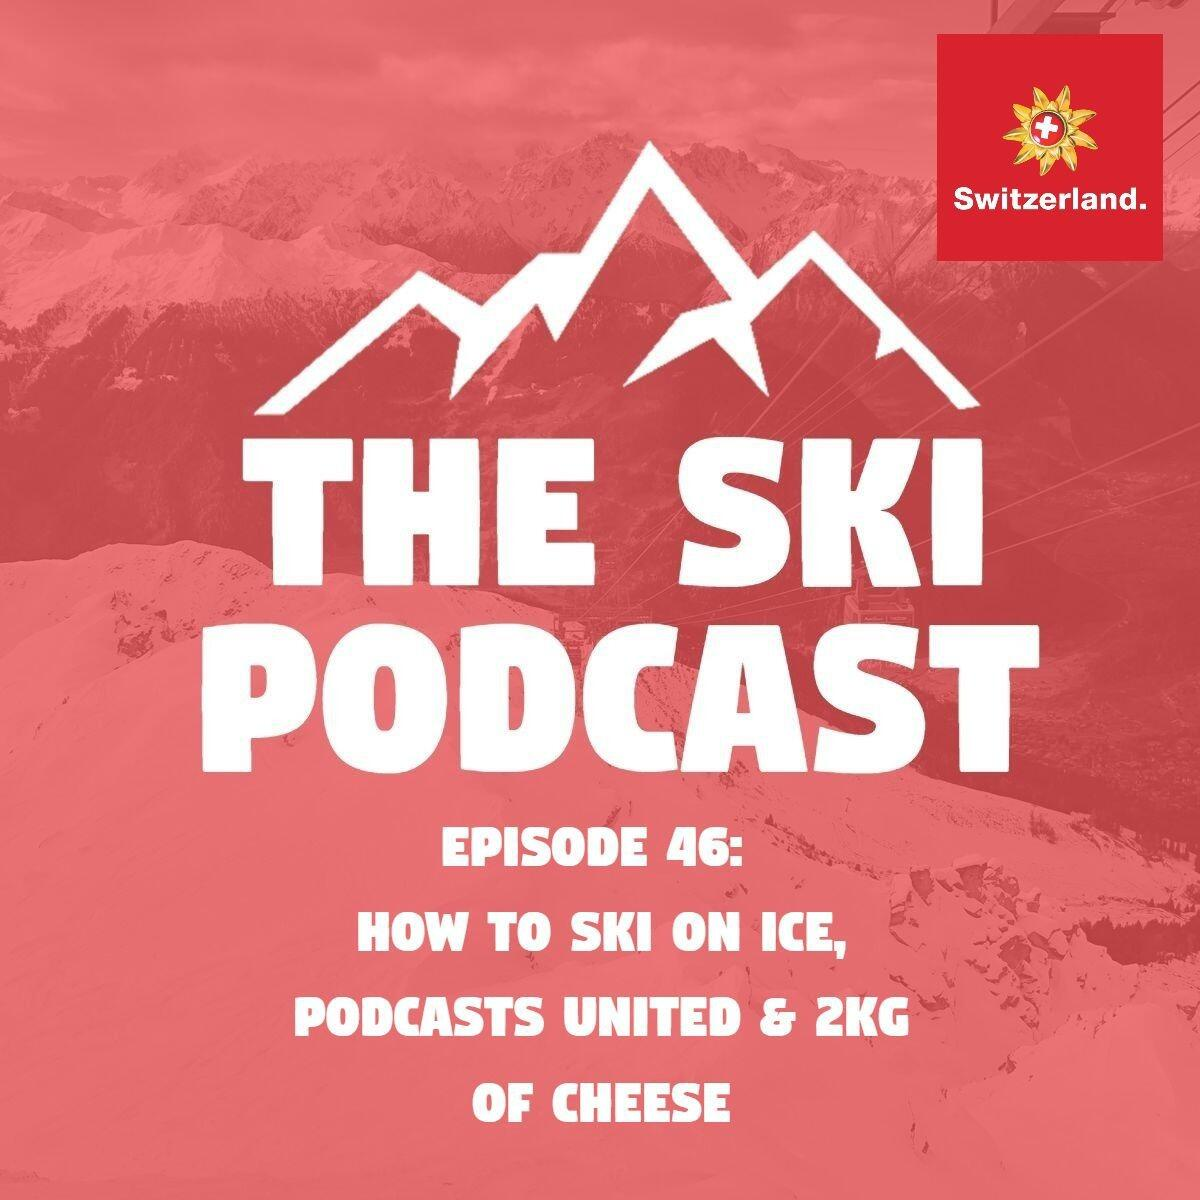 46: How to Ski on Ice, Podcasts United and 2kg of cheese